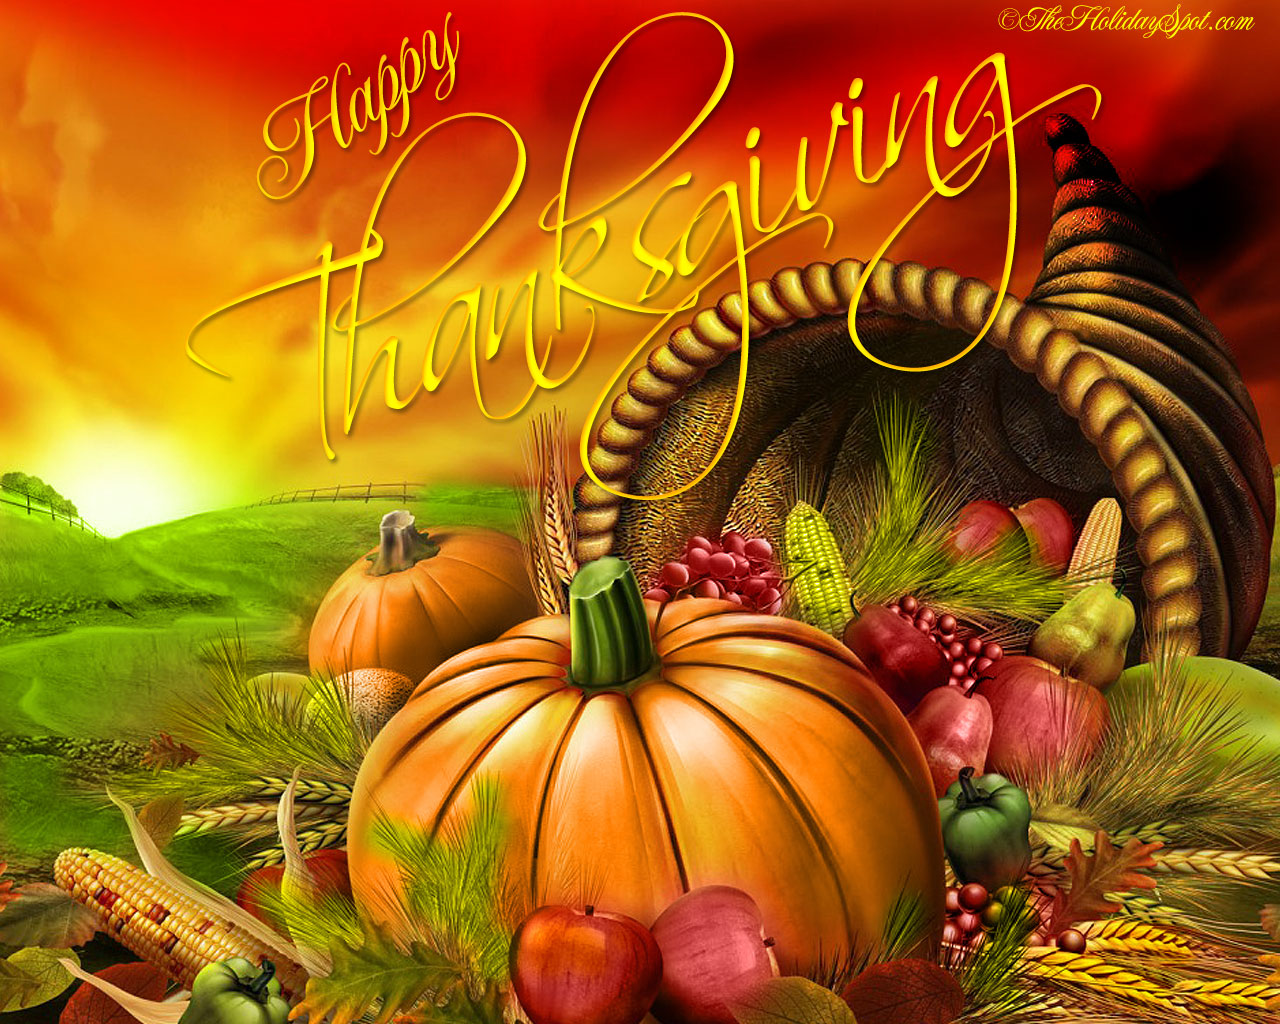 http://www.theholidayspot.com/thanksgiving/wallpapers/new_images/thanksgiving-cornucopia.jpg